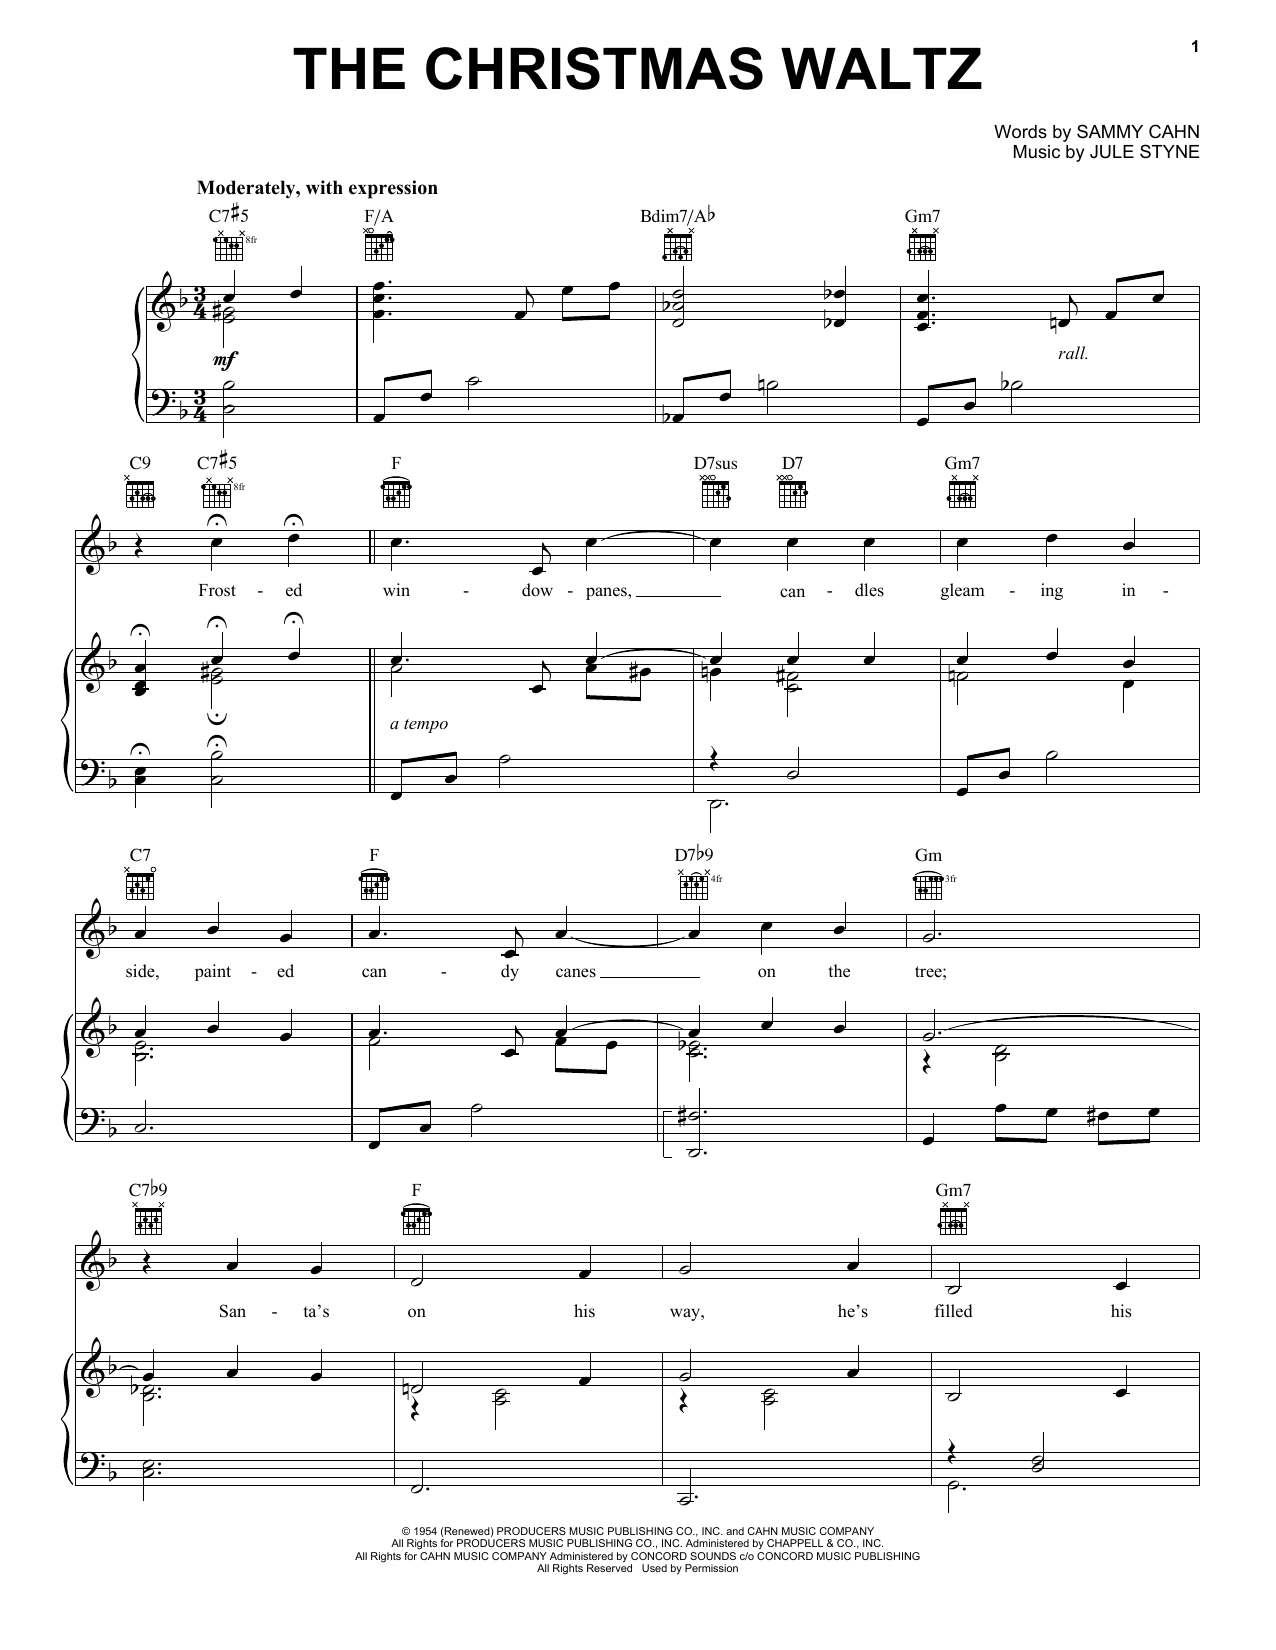 Frank Sinatra The Christmas Waltz sheet music notes and chords. Download Printable PDF.